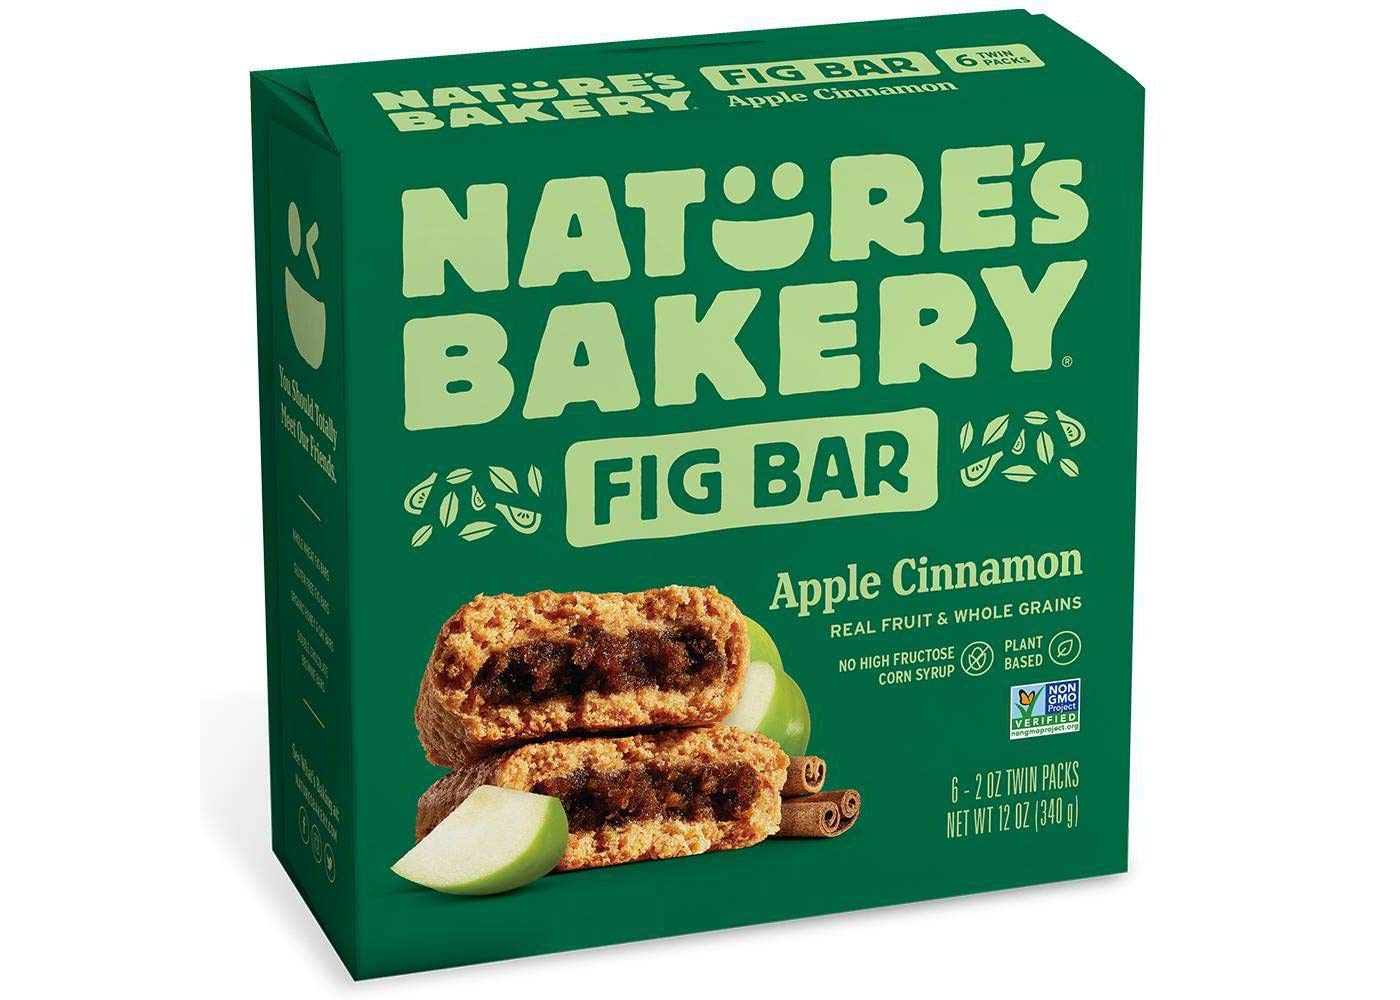 Nature's Bakery Apple Cinnamon Real Fruit, Whole Grain Fig Bar - 6 ct. (12 oz.) by Nature's Bakery FB